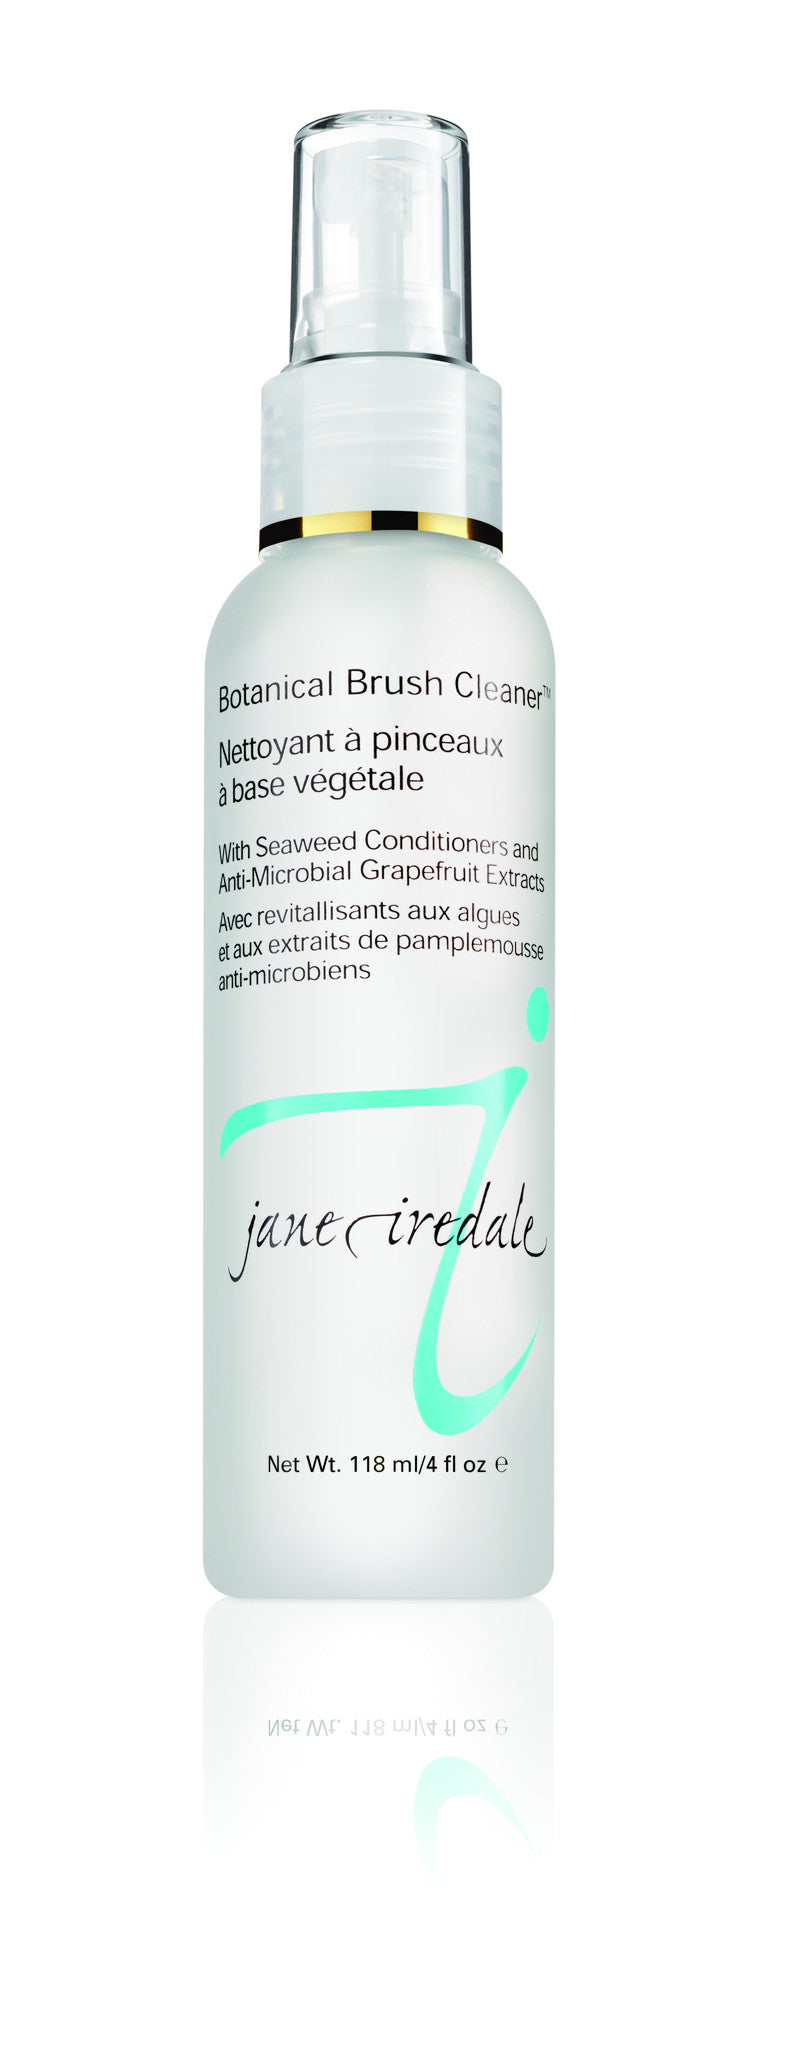 jane iredale Botanical Brush Cleaner